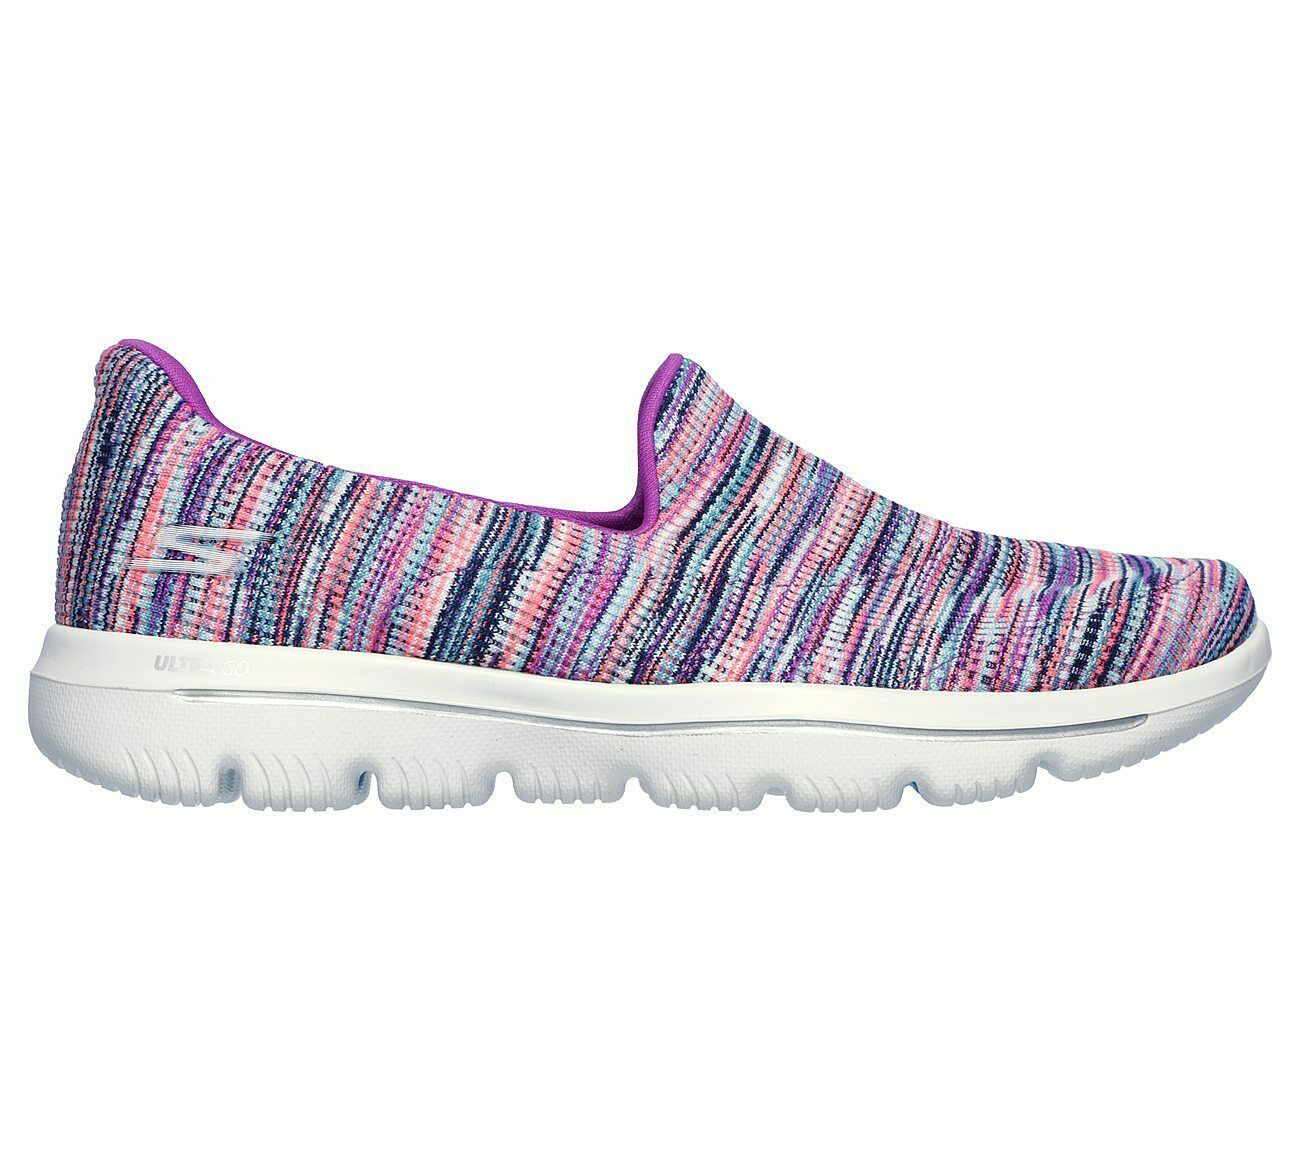 Skechers Shoes Purple Pink Go Walk Evolution Women's Sporty Casual Slip On 15759 image 2